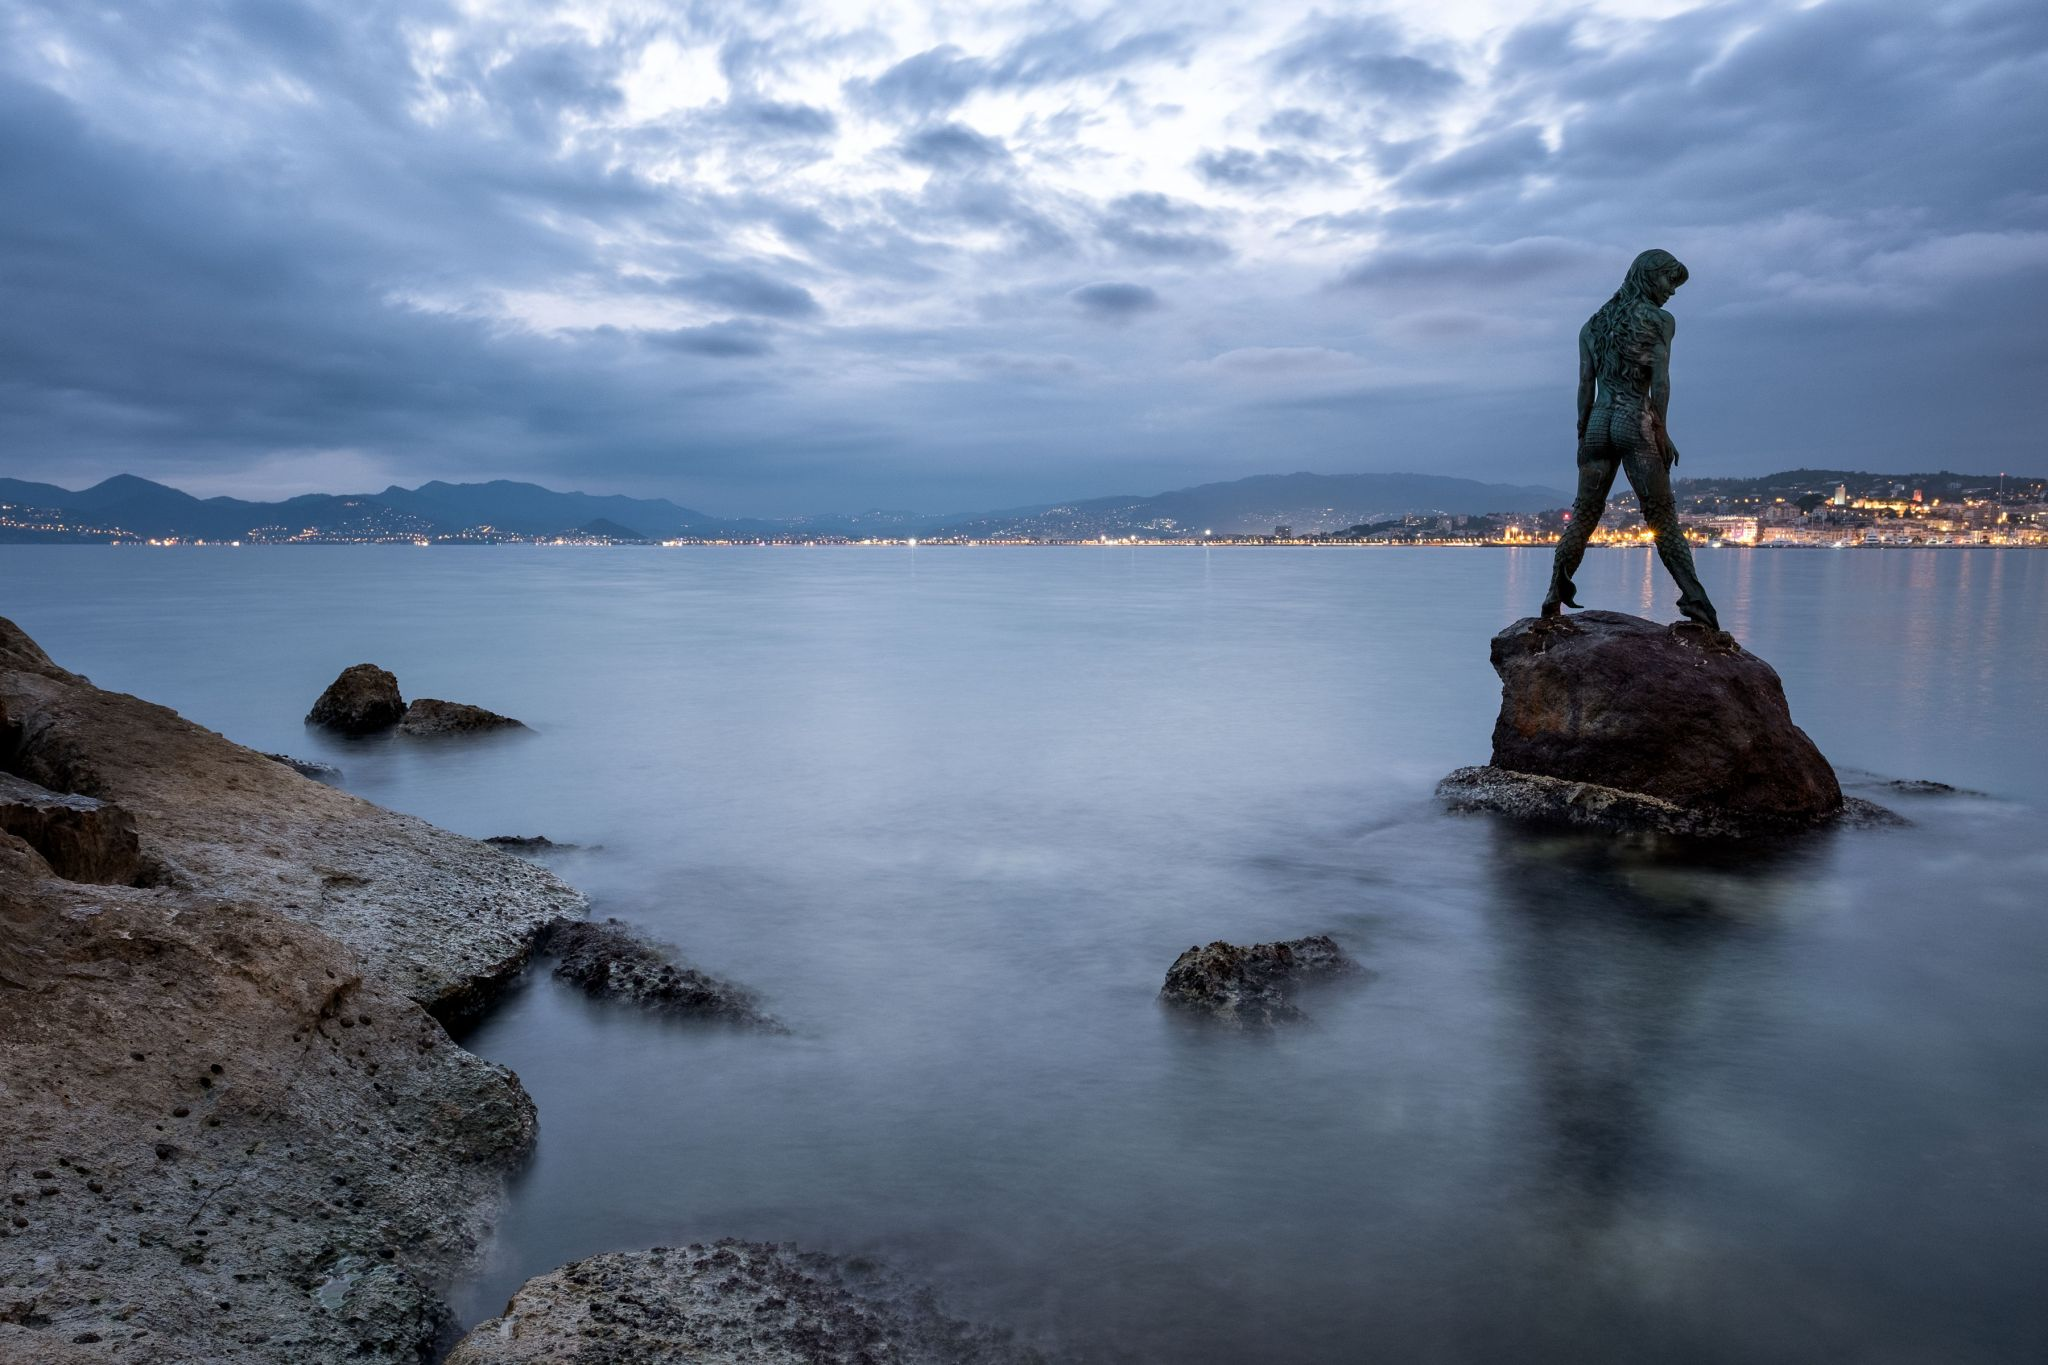 Cannes - port Pierre Canto, France